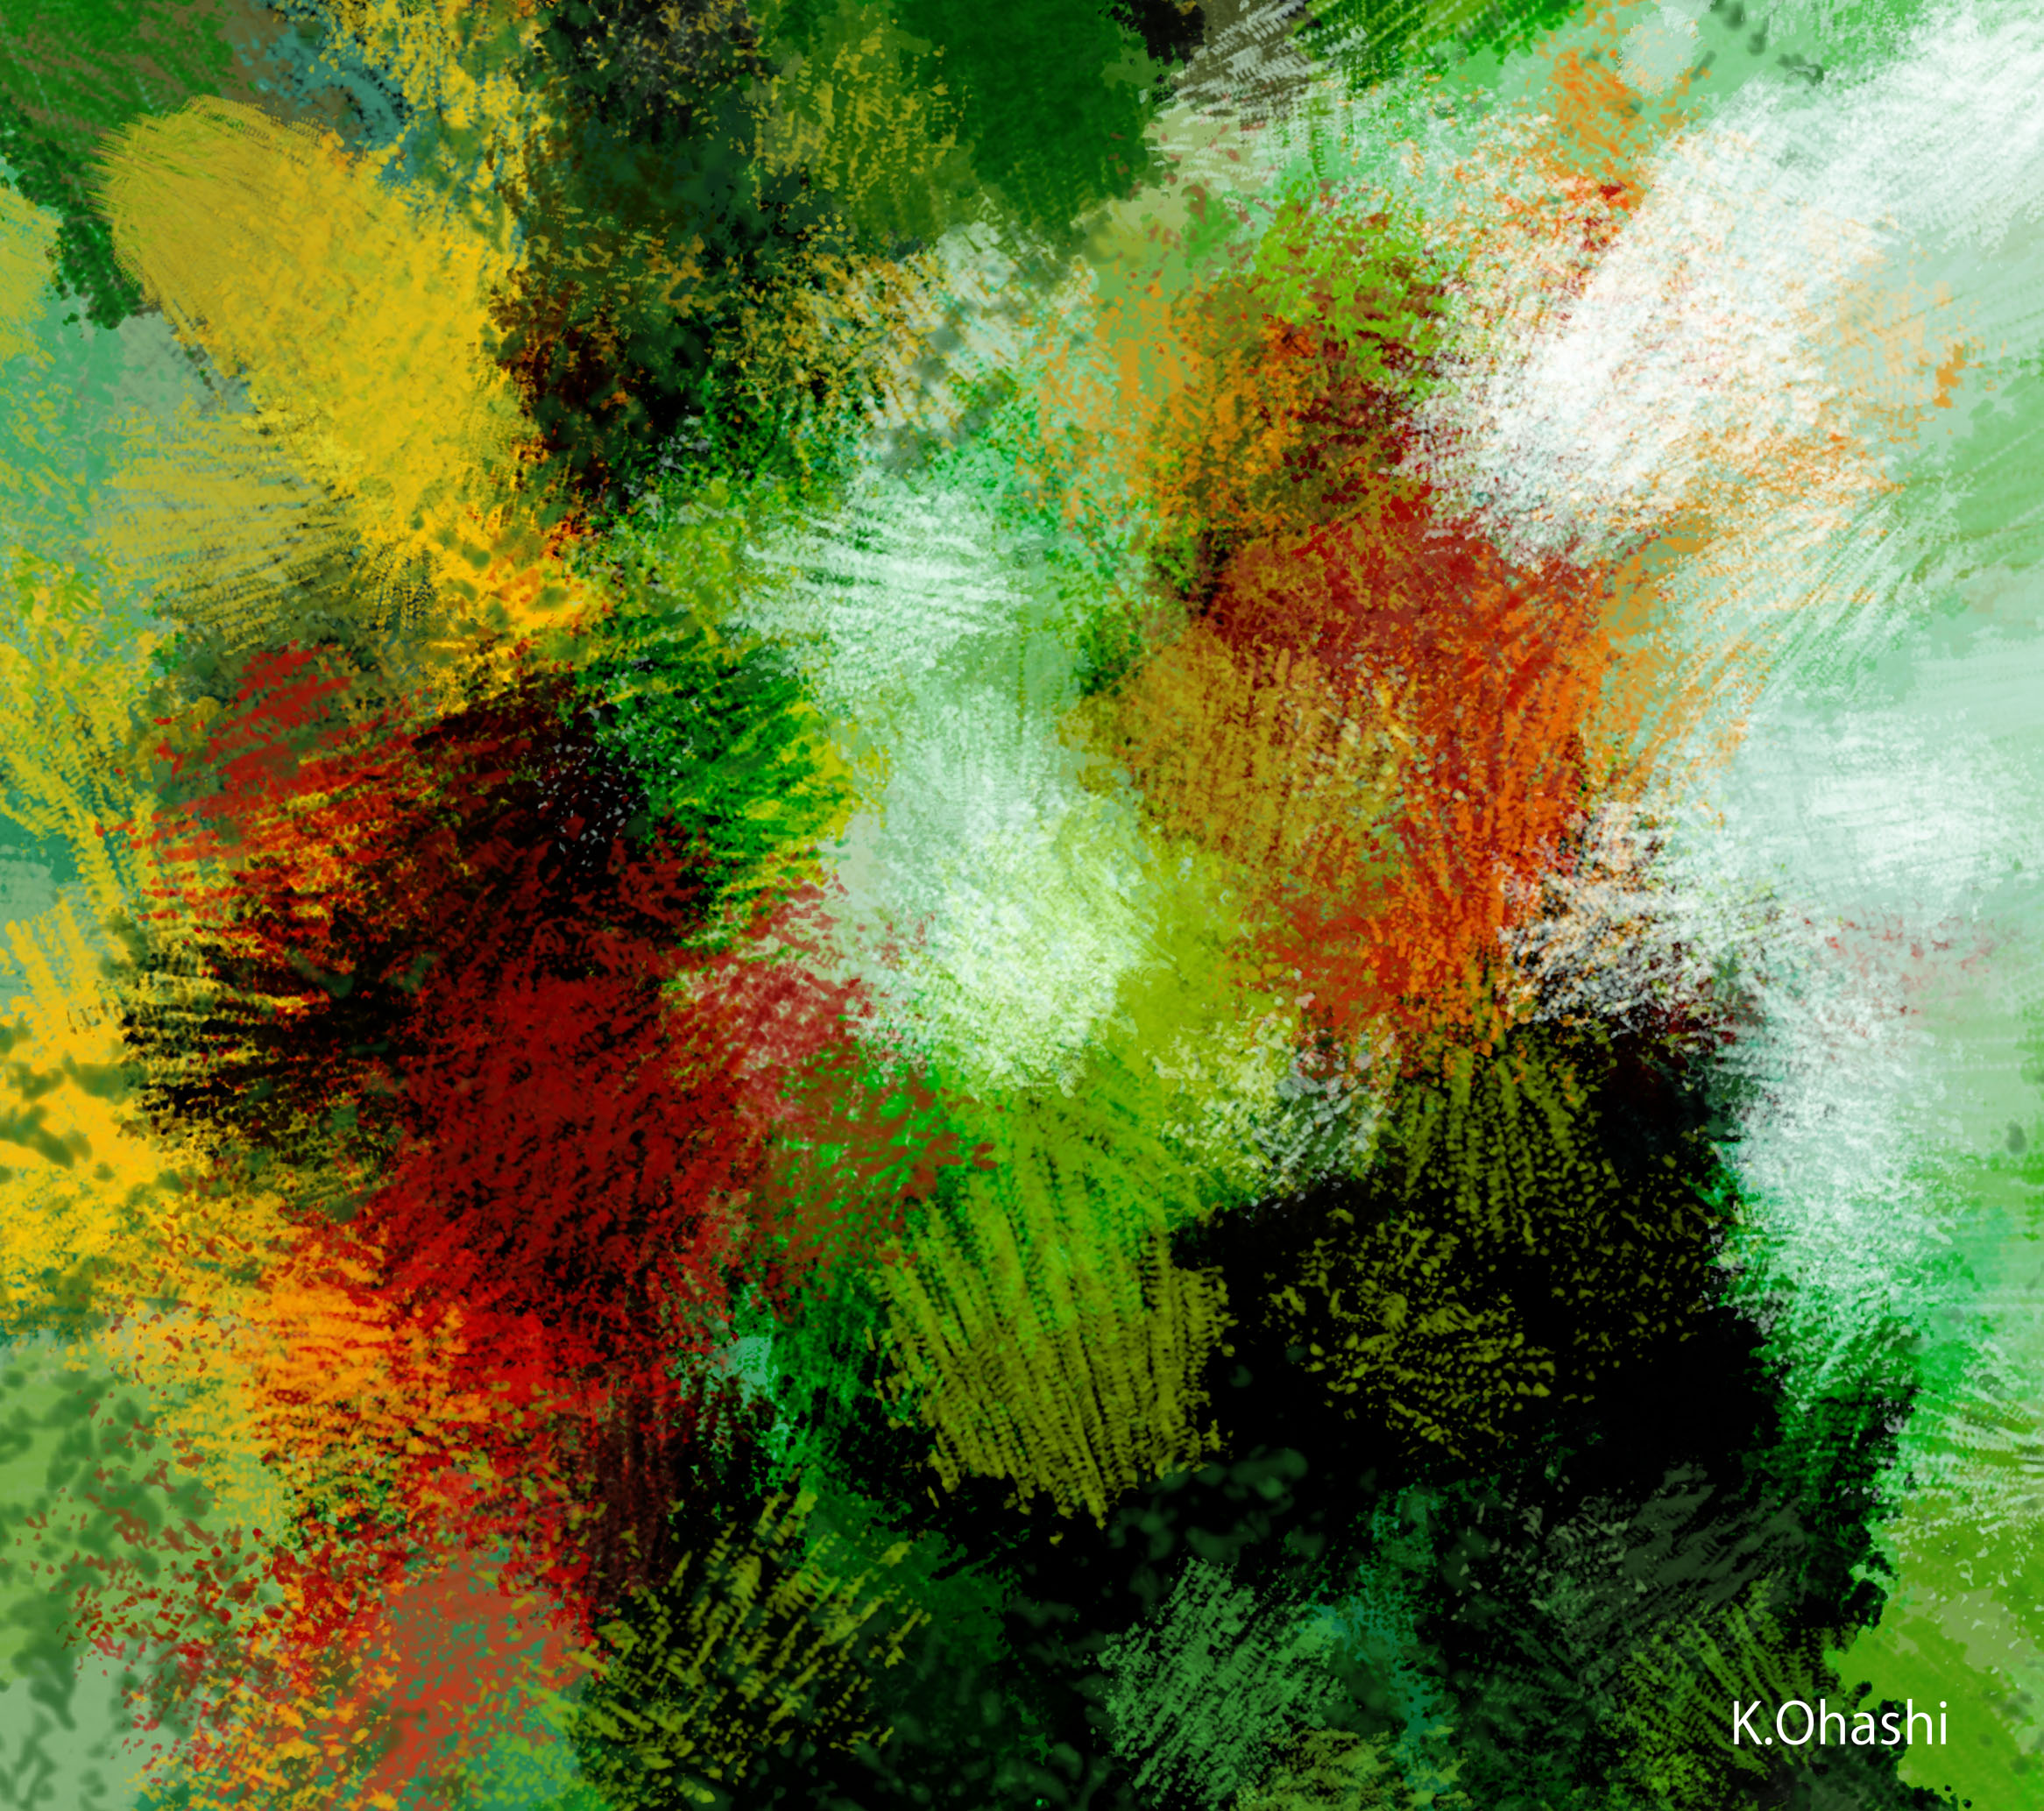 Abstraction201506271715